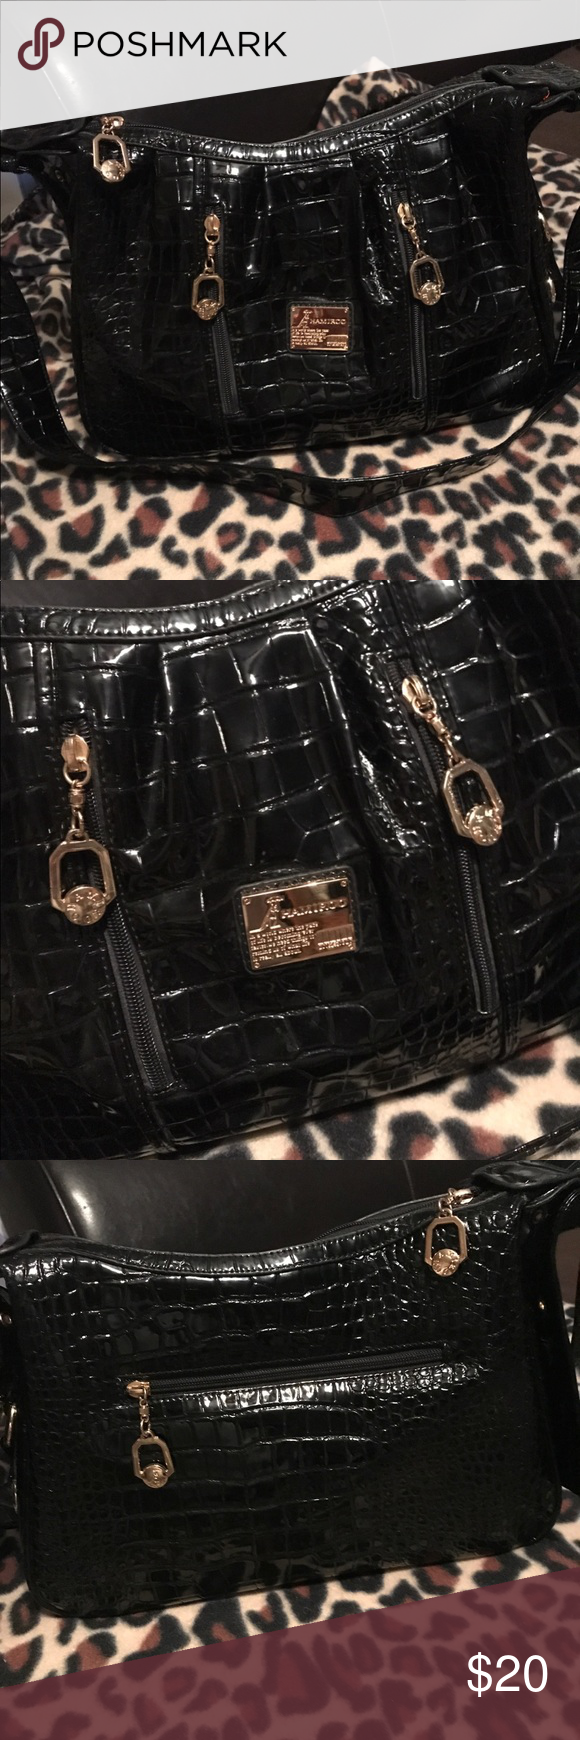 751790bd83 Hamiroo purse Like new. No stains or rips. Has a shoulder strap abs extra  strap to make shorter hamiroo Bags Shoulder Bags